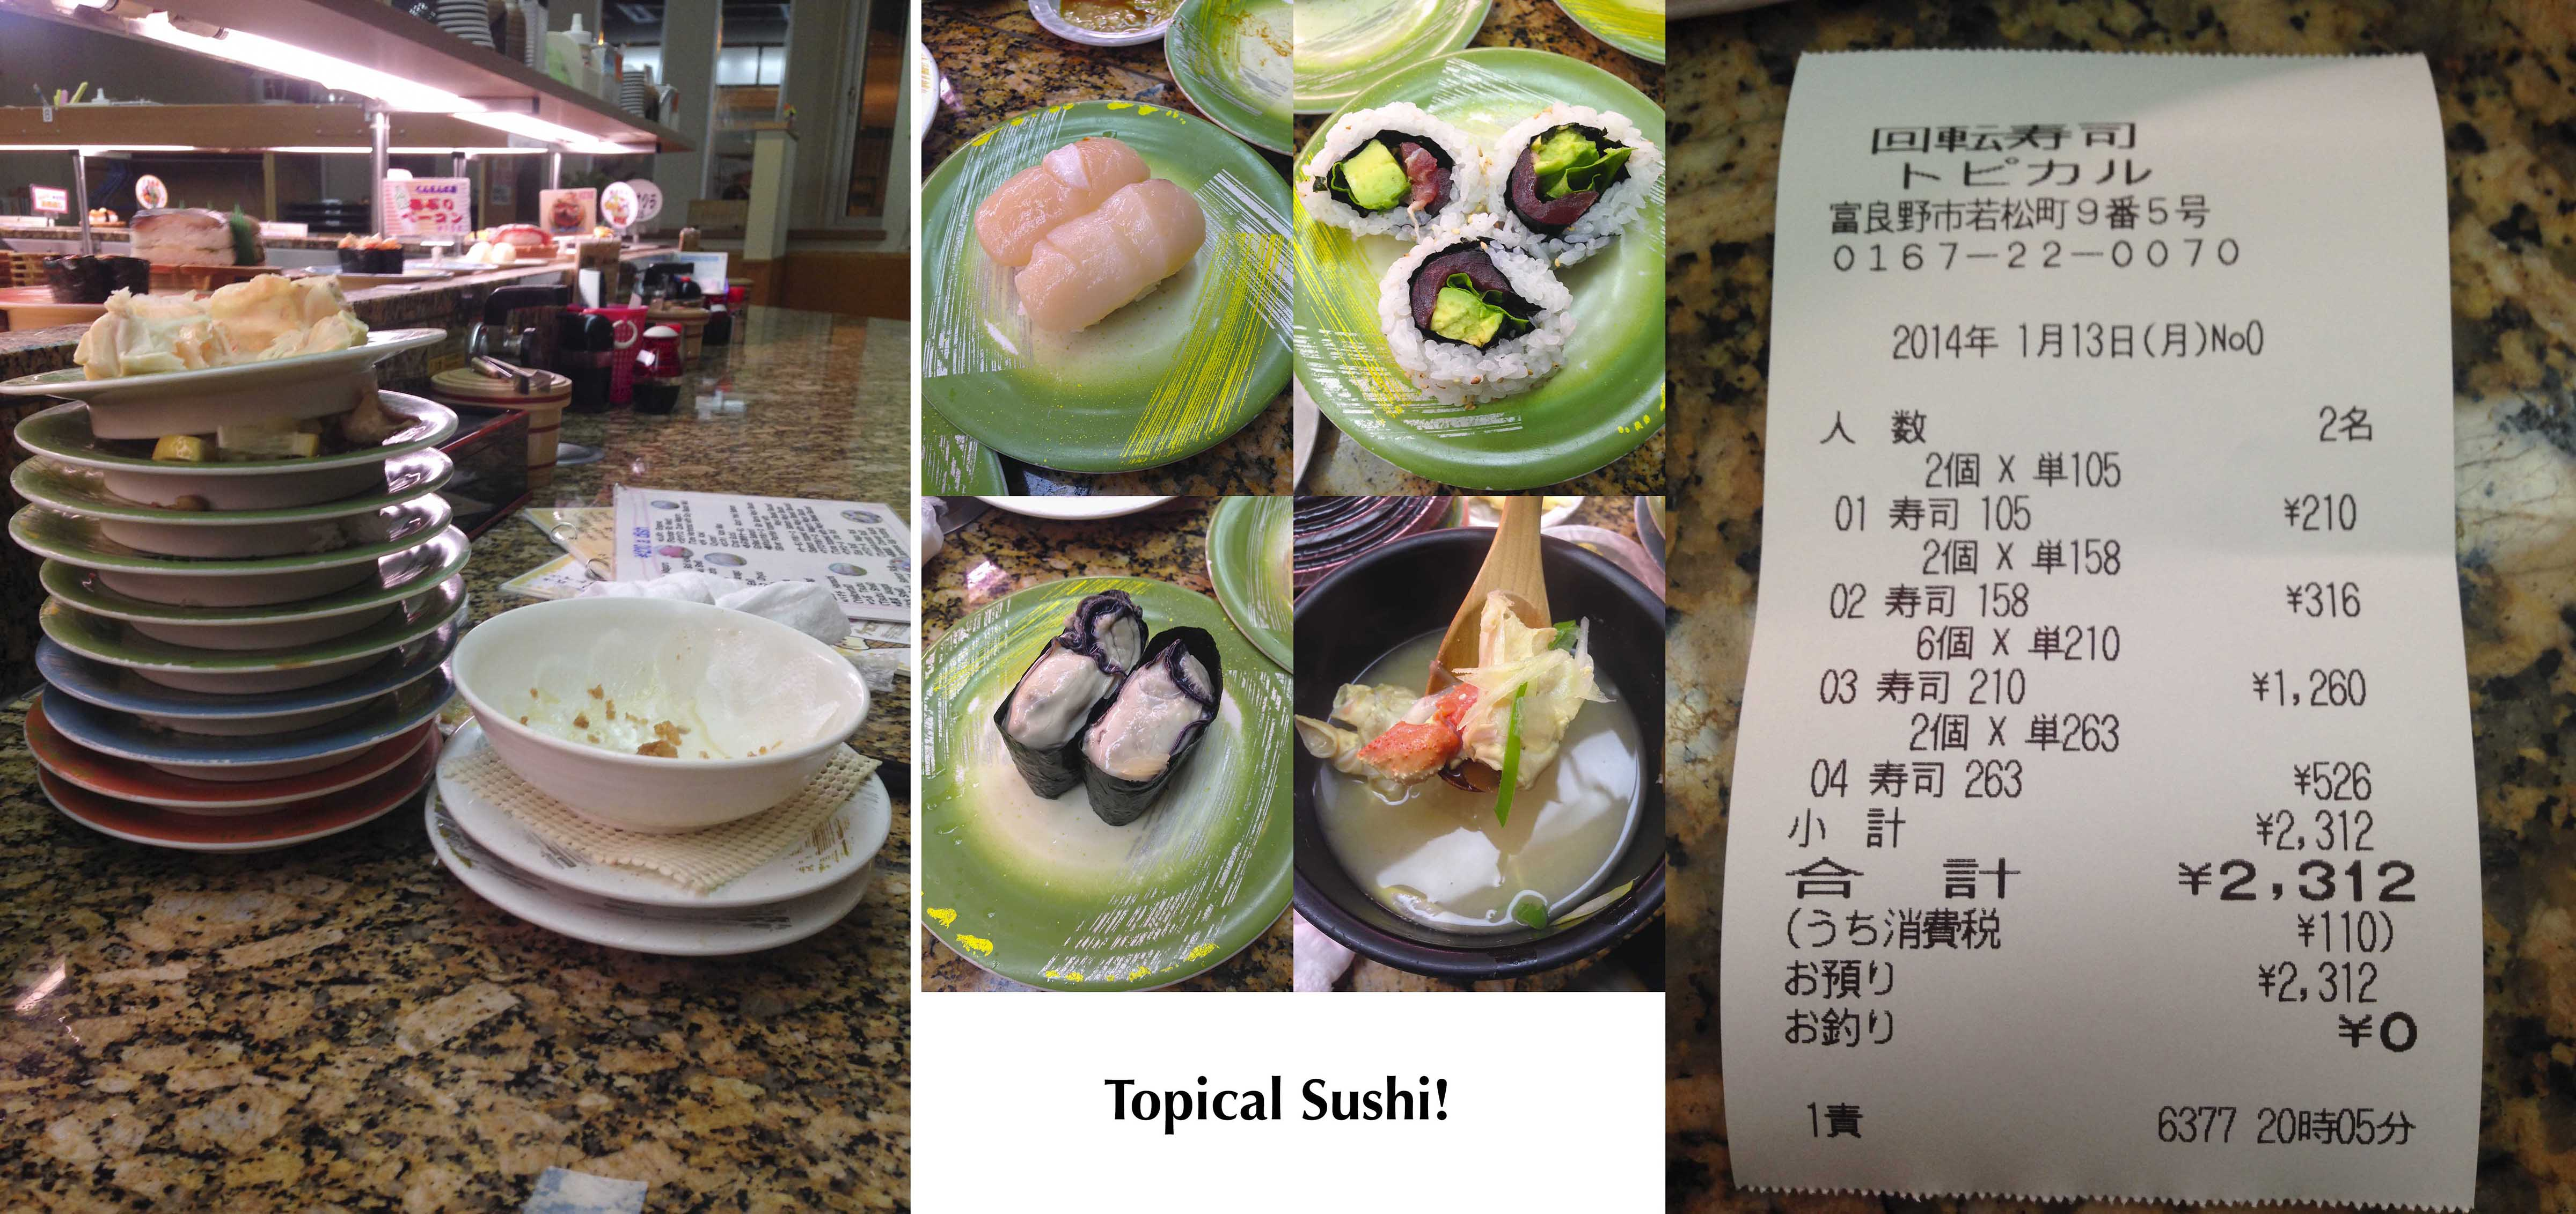 Topical Sushi's menu